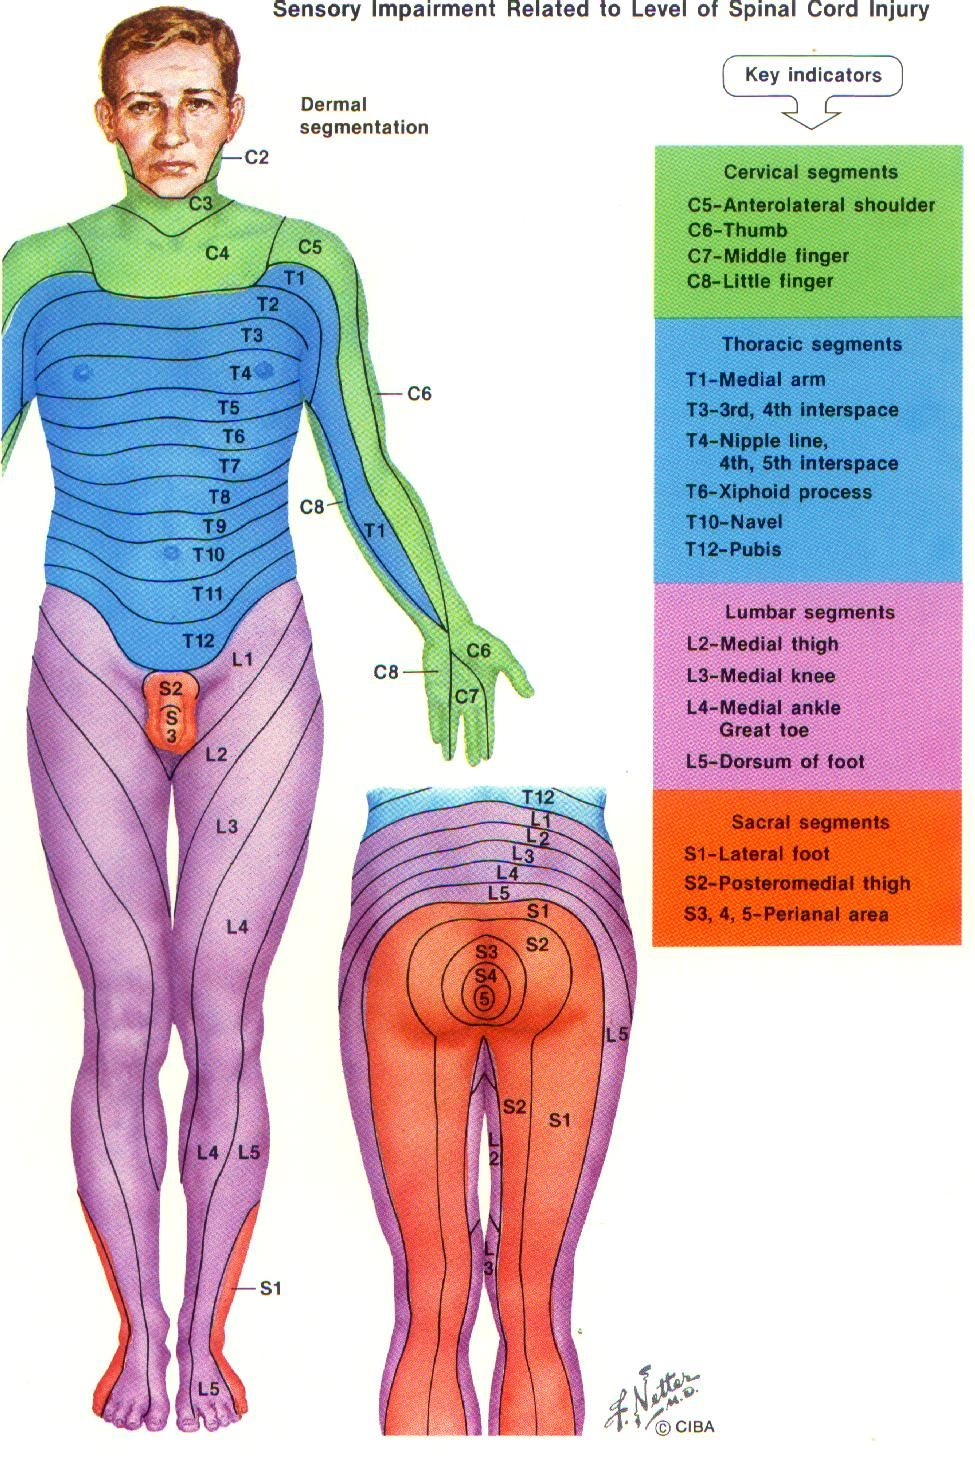 dermatome chart with symptoms more pain first thing in